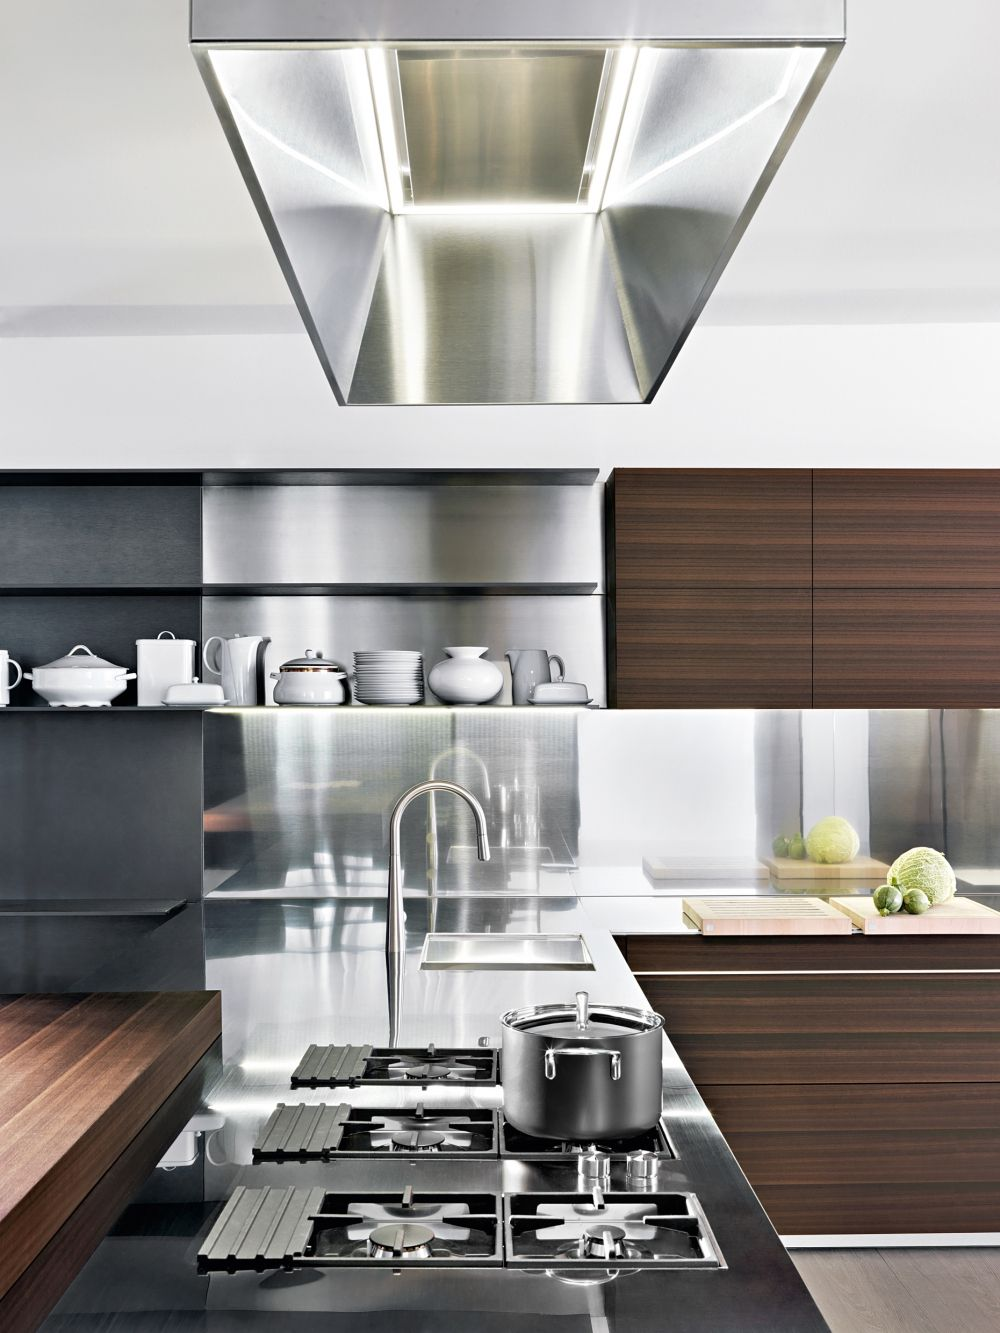 Hoods Accessories - Dada | rangehoods | Pinterest